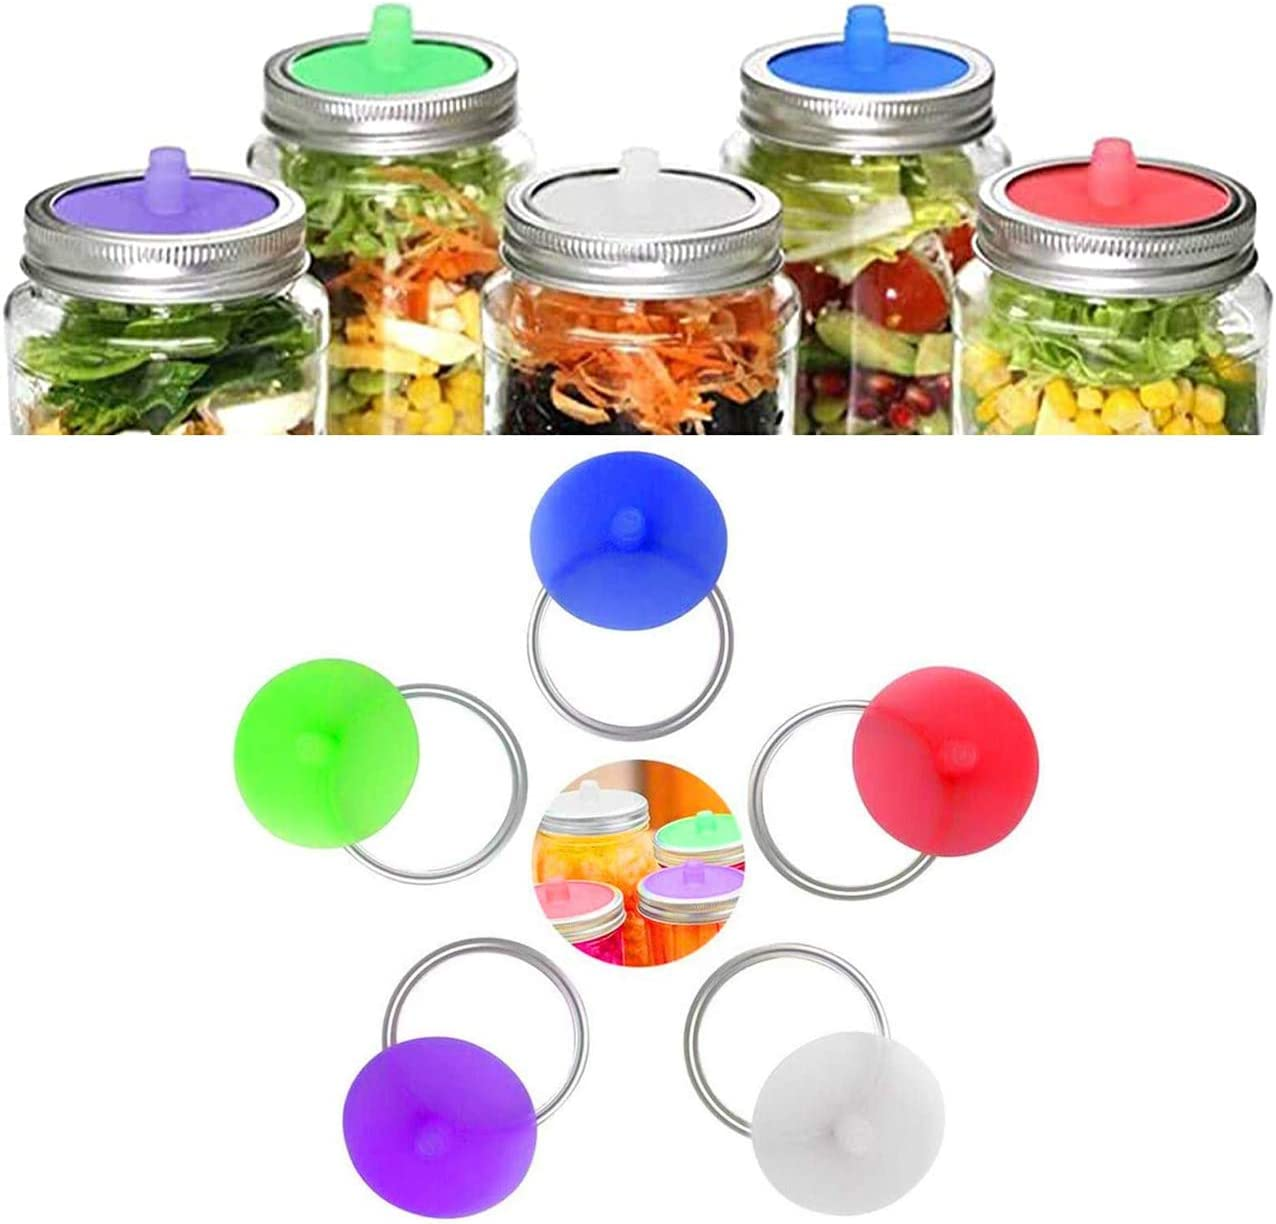 Silicone Fermenting Lids, Waterless Airlock Fermentation Mason Jar Lids Silicone Airlock Lids, Kimchi, Pickles, and Fermented Probiotic Food, 5 Pack (Jars & Metal Rings Not Included)